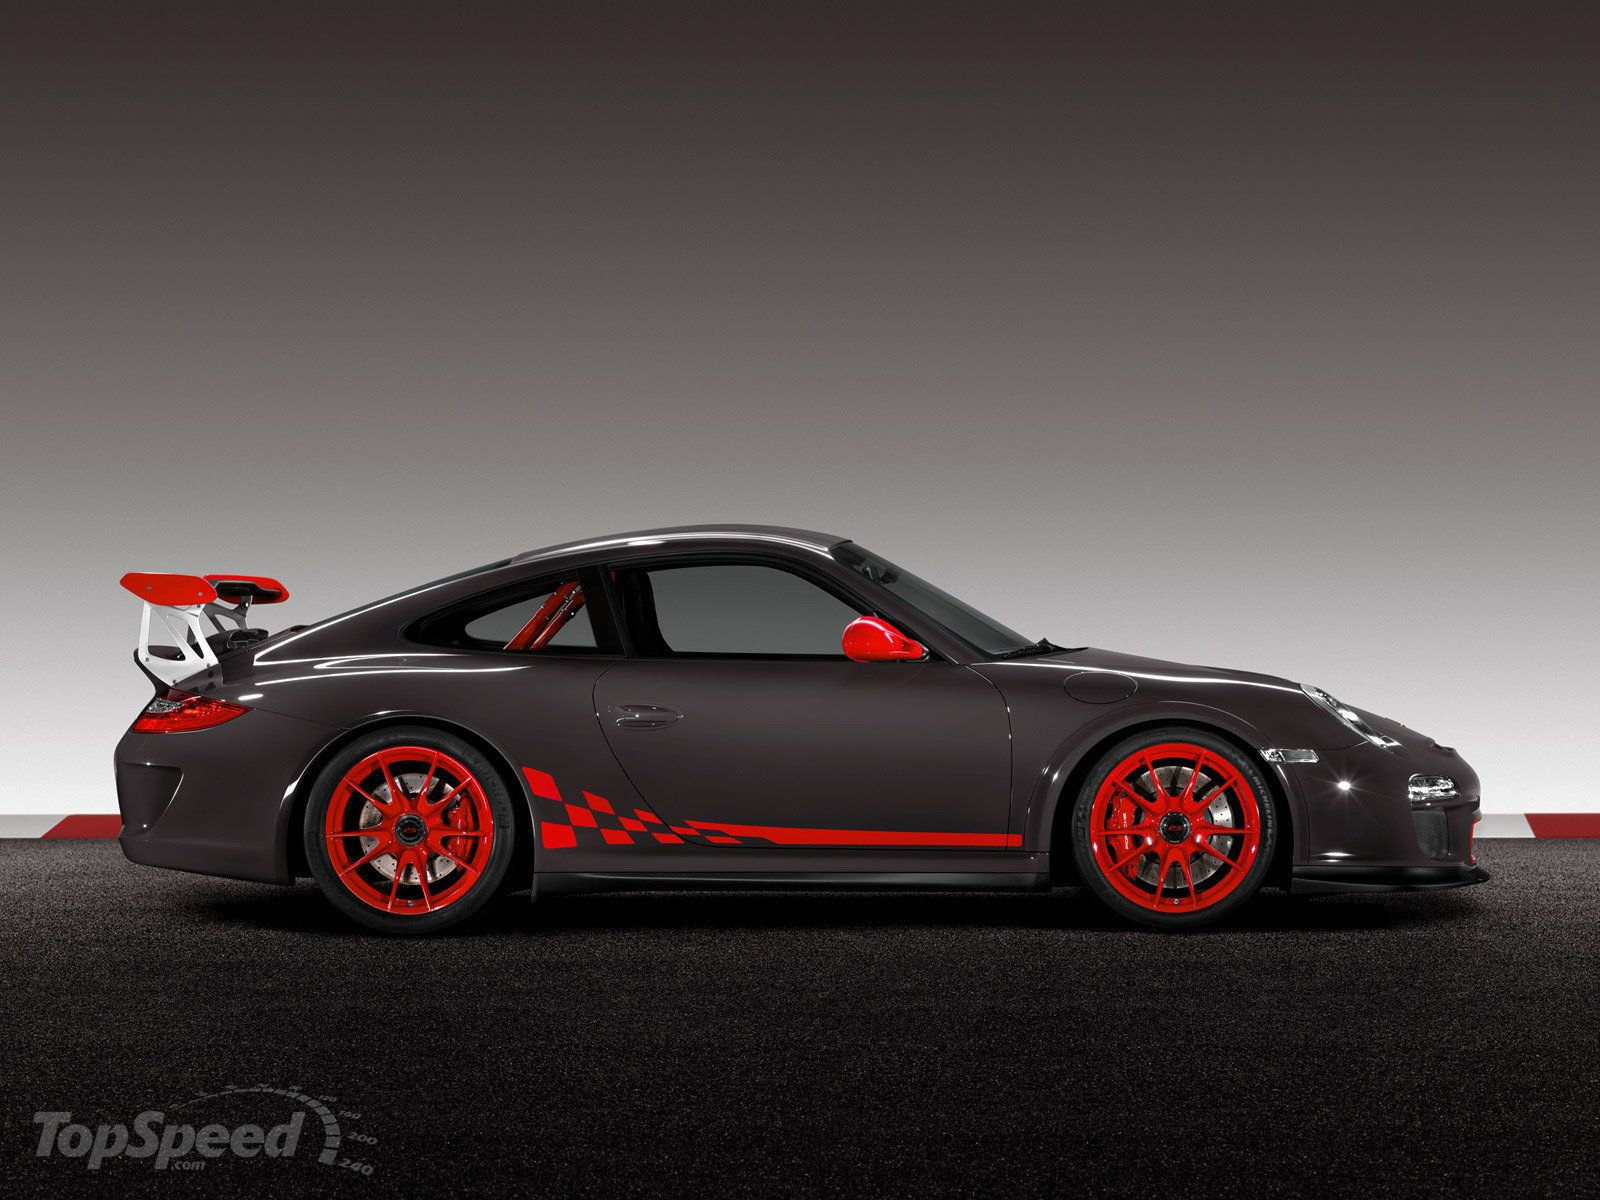 Free Cars Hd Wallpapers Porsche Gt3 Rs Tuning Hd Wallpapers Porsche 911 Gt3 Porsche 911 Porsche Carrera Gt